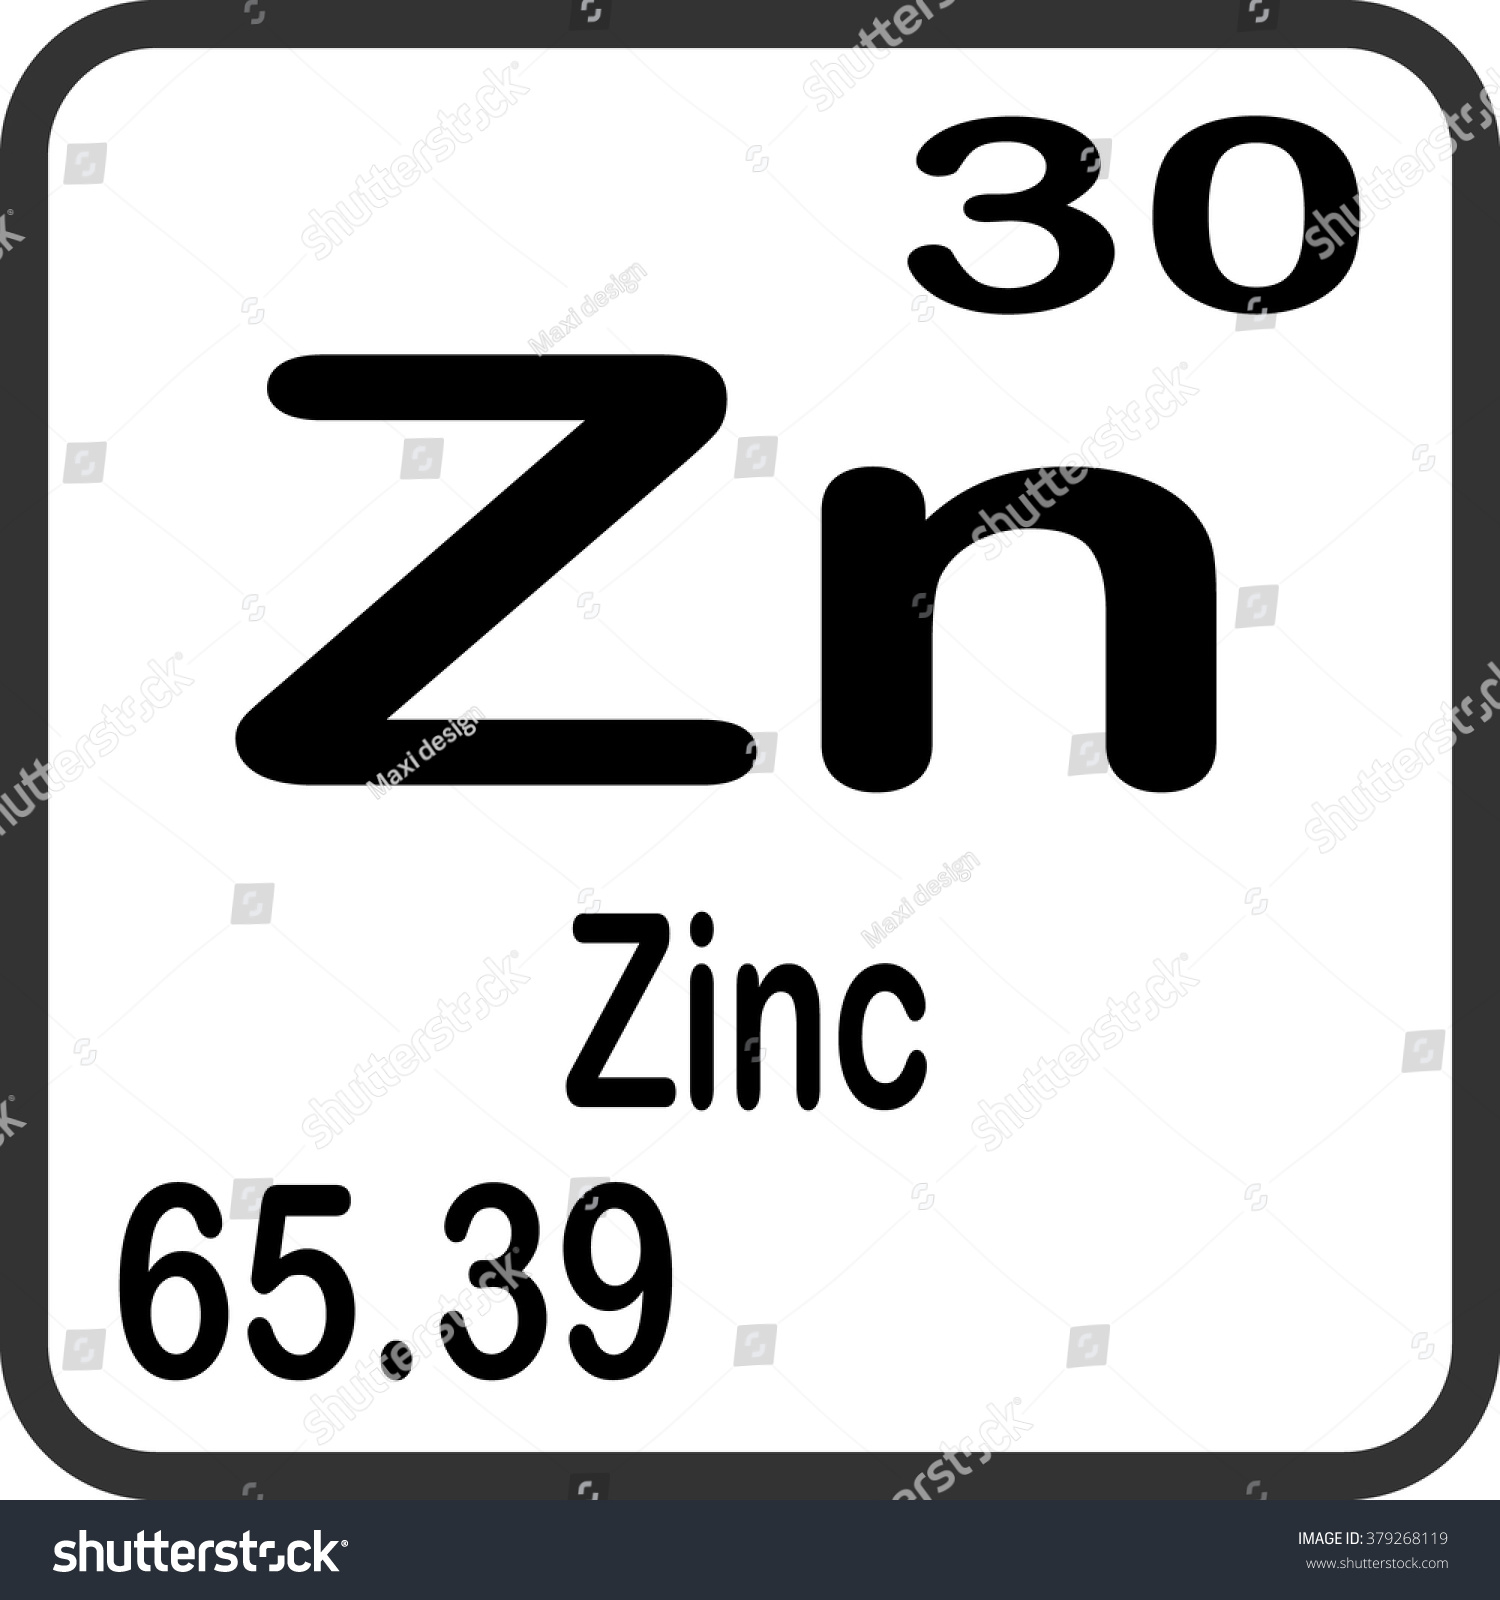 Periodic table elements zinc stock vector 379268119 shutterstock periodic table of elements zinc buycottarizona Gallery